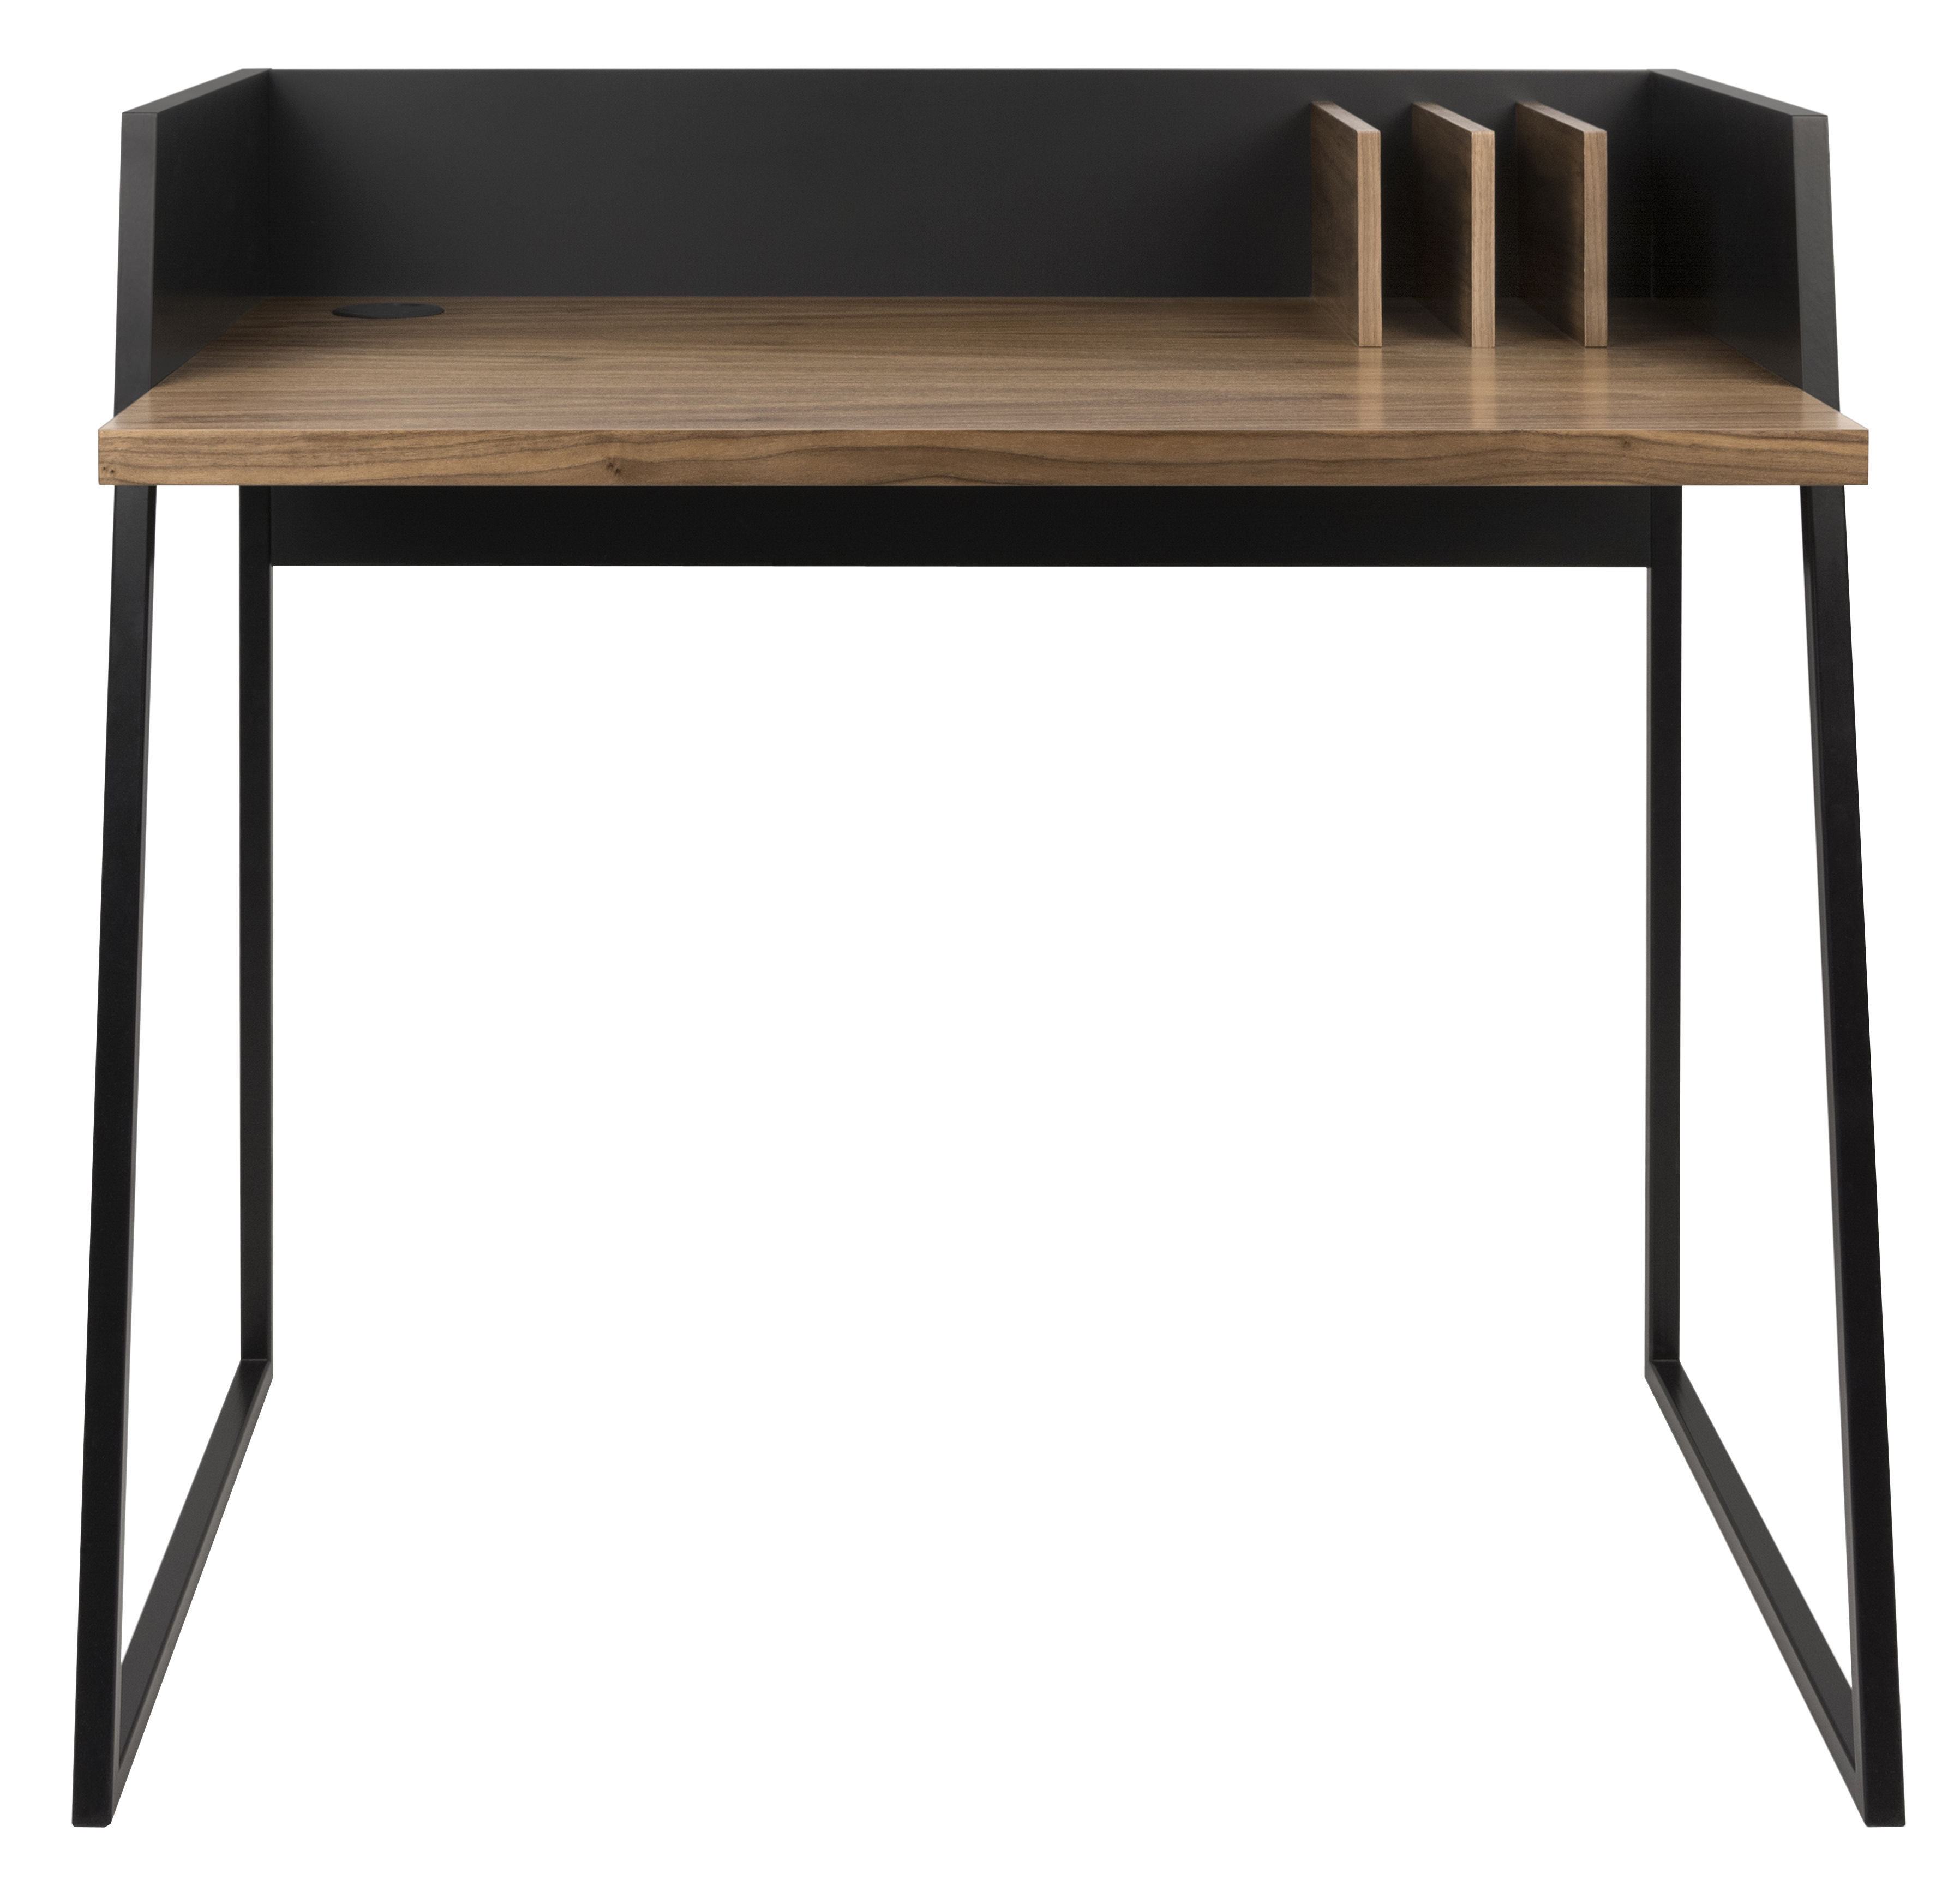 Furniture - Office Furniture - Working Desk by POP UP HOME - Black / Walnut - Lacquered metal, Walnut plywood